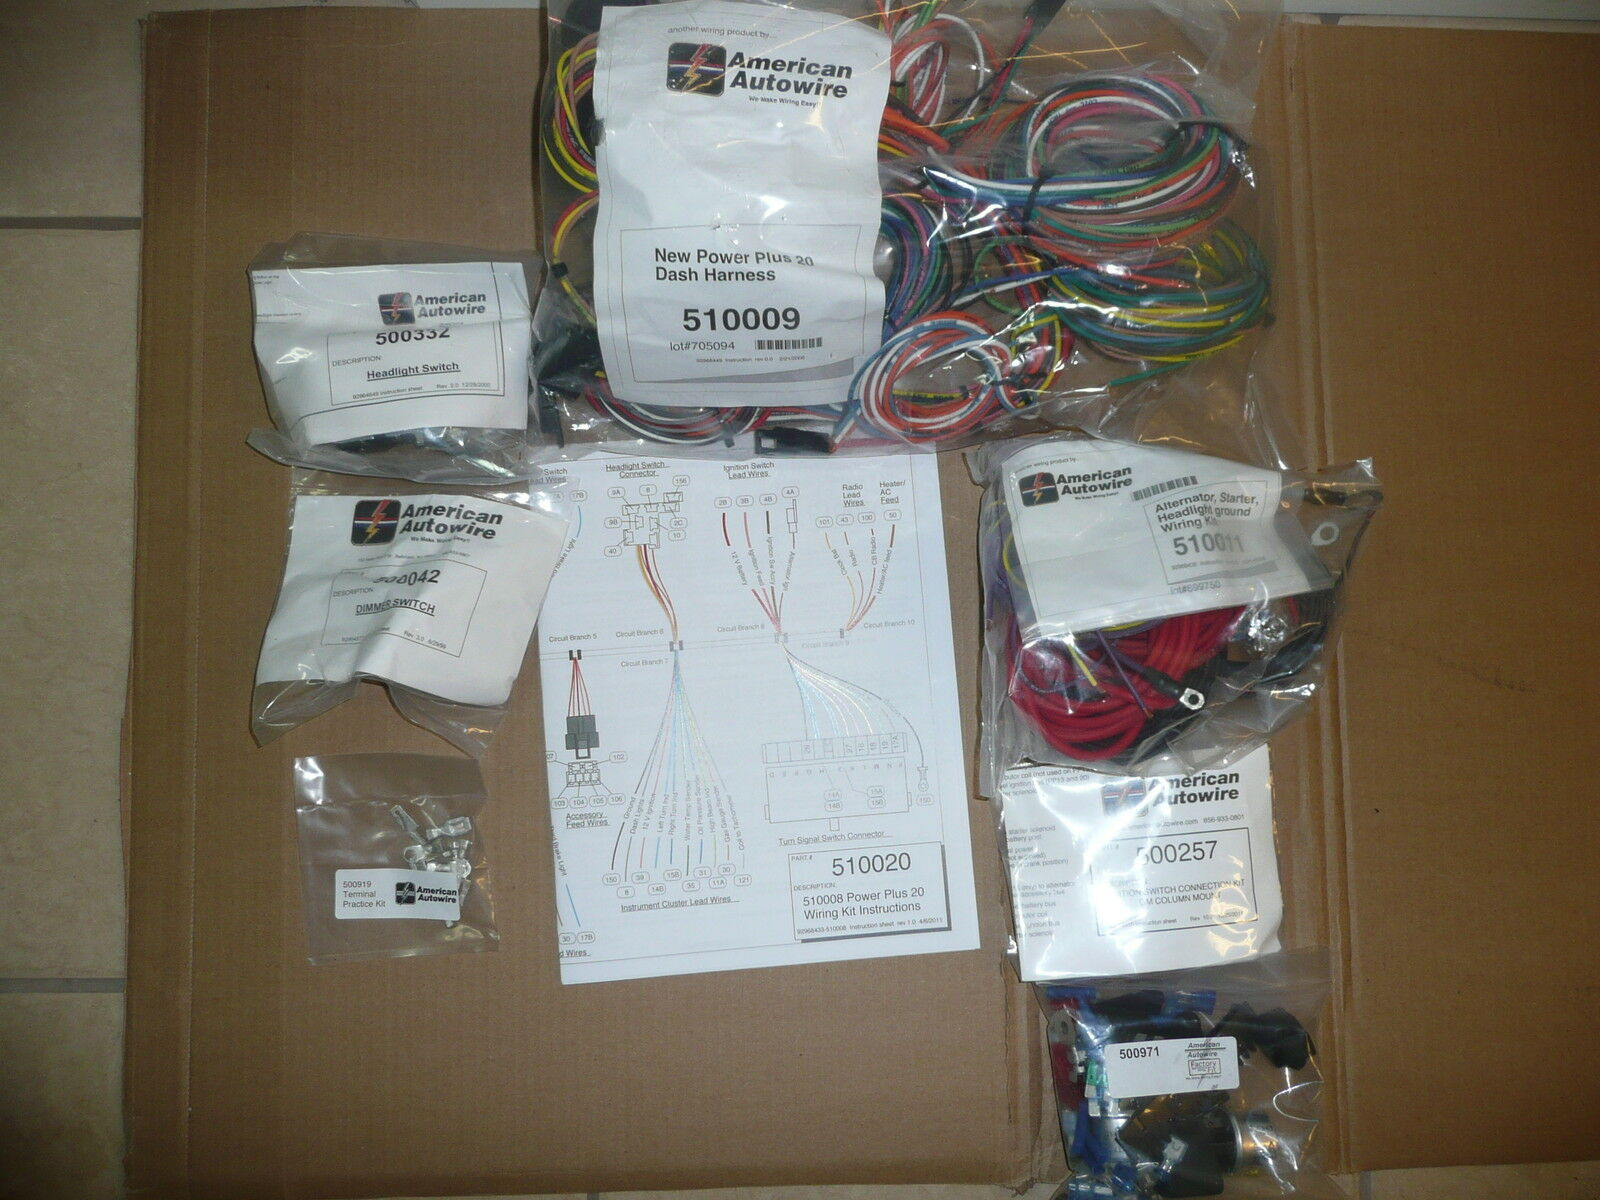 American Autowire Power Plus 20 510008 Street Rod Hot Universal Wiring Harness 1 Of 3only 2 Available See More